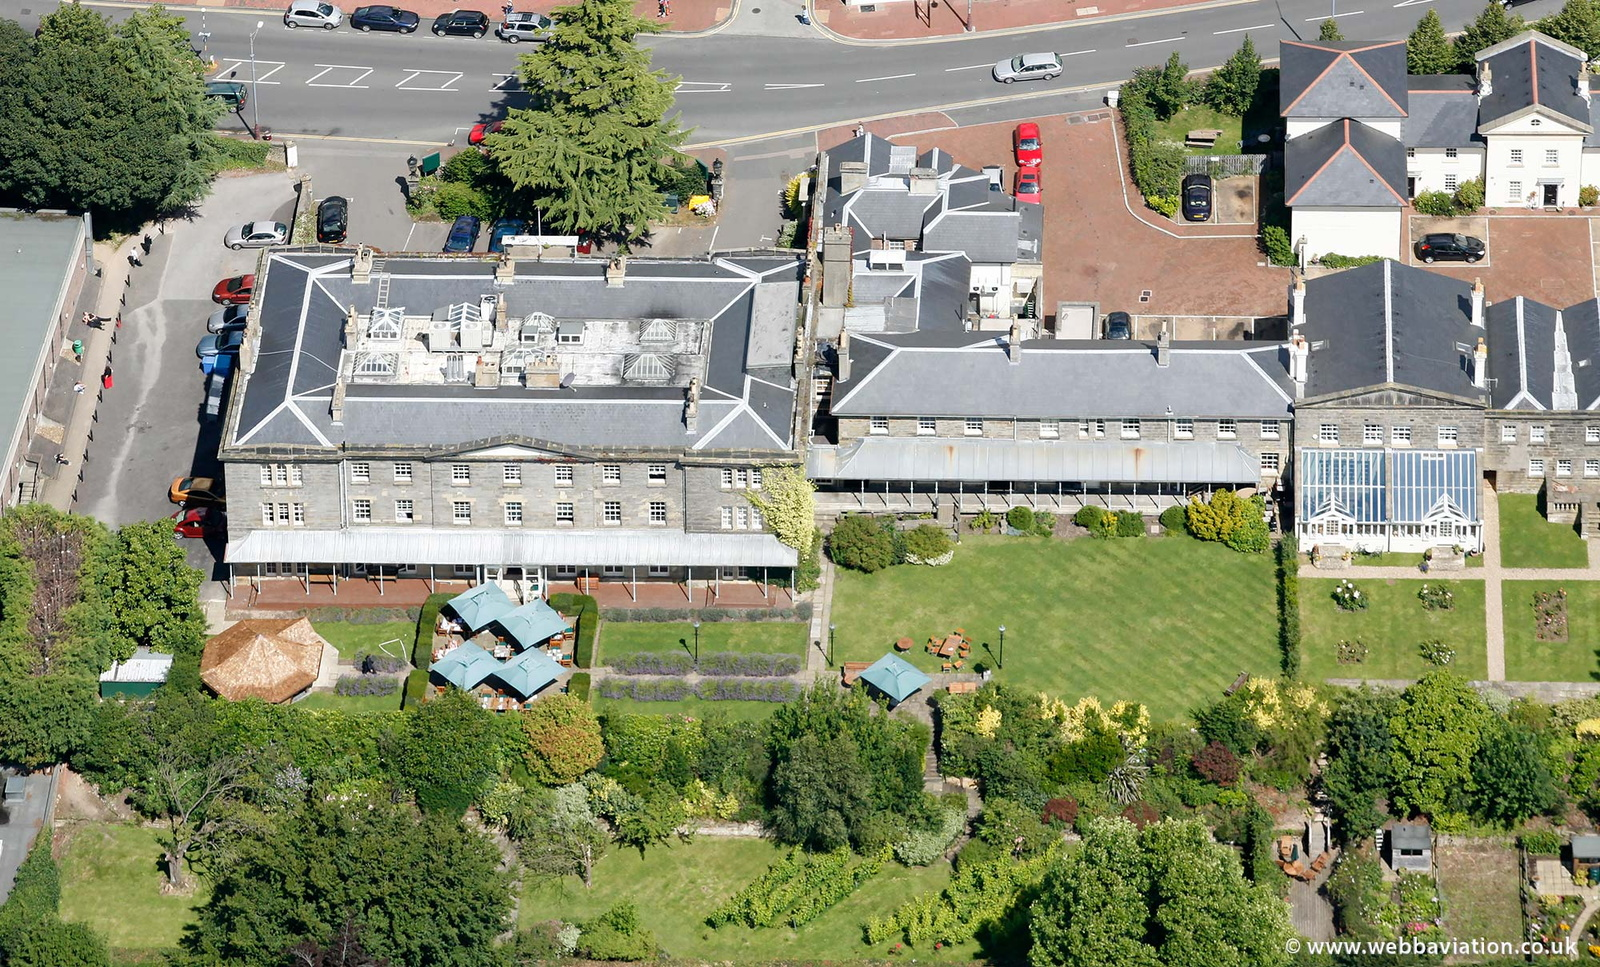 Hotel du Vin Royal Tunbridge Wells from the air